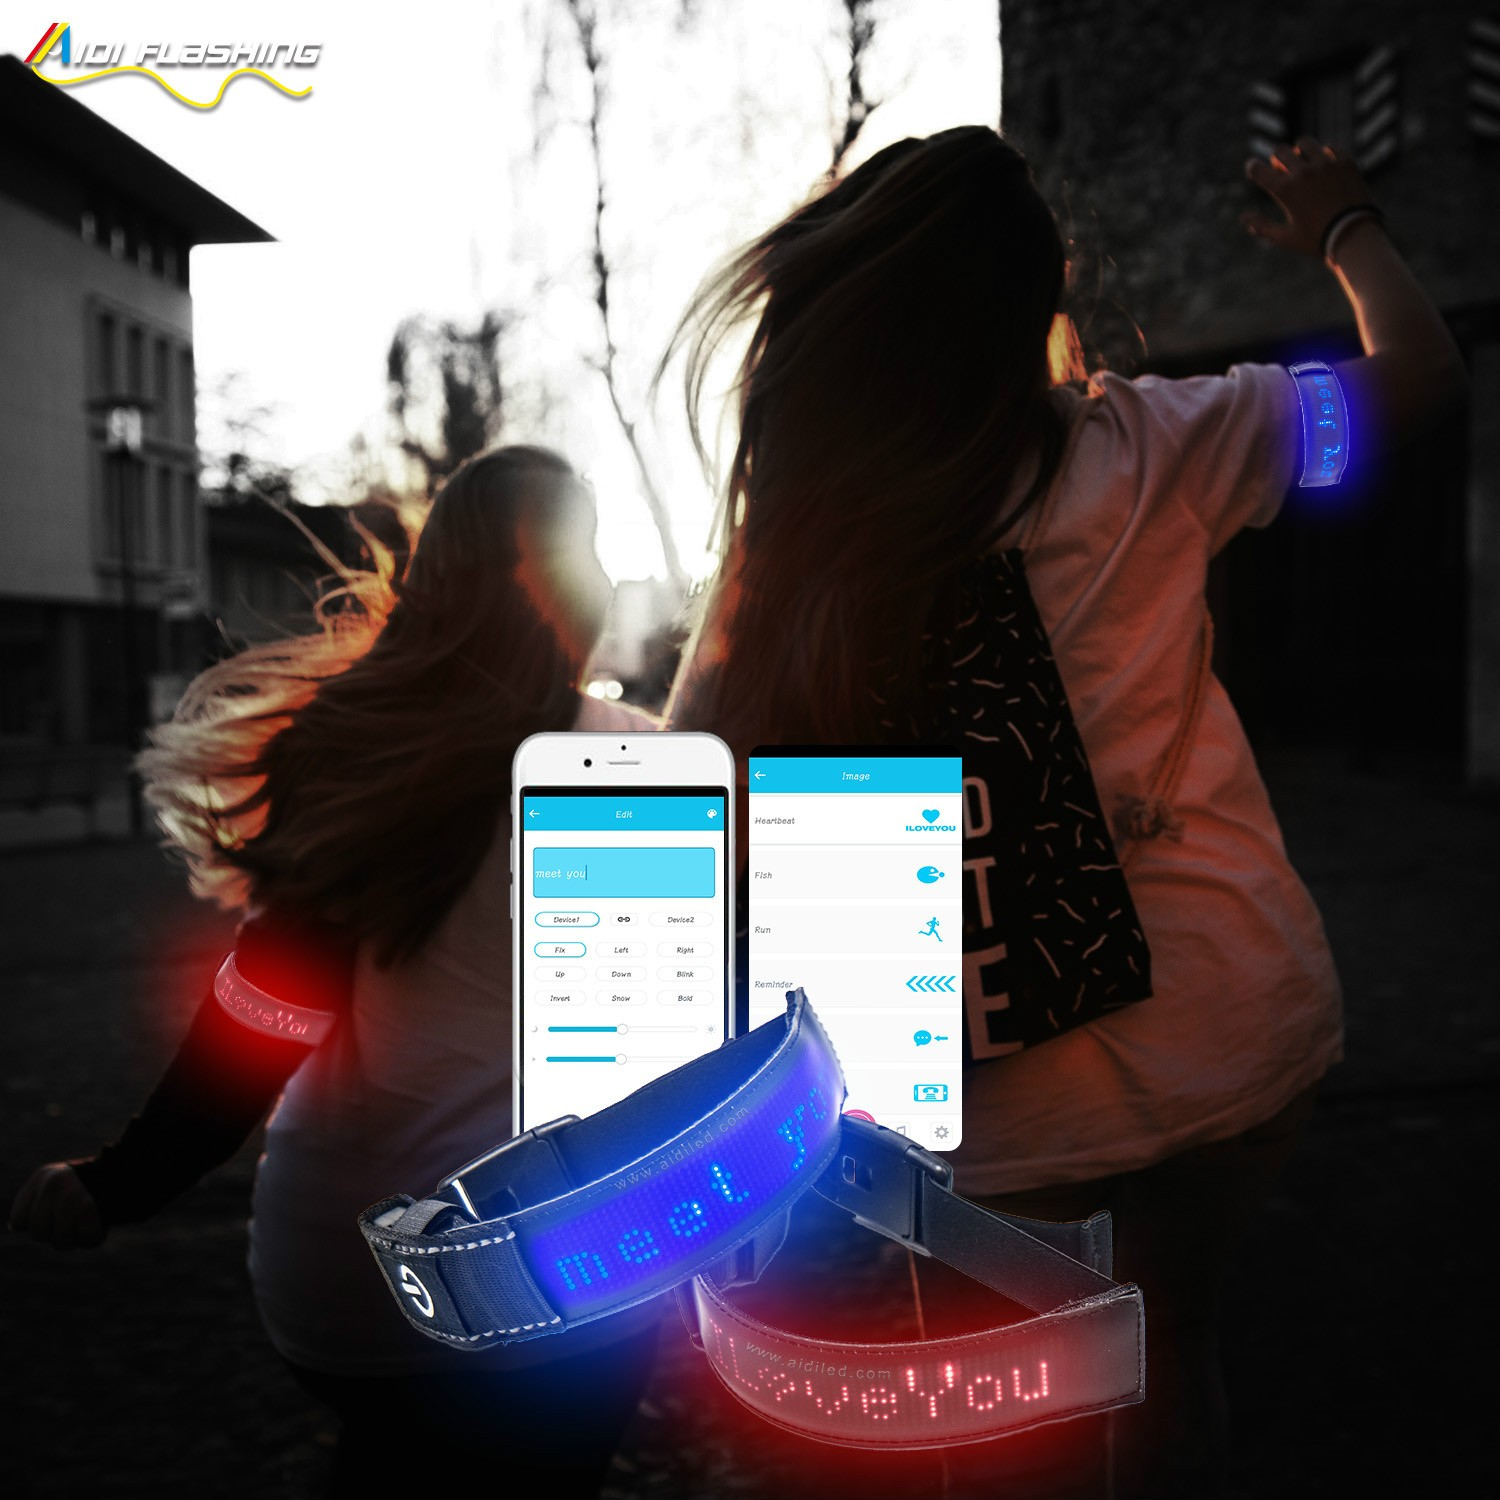 news-LED Light Up Armband For Running Will Help Kids Run Safely-AIDI-img